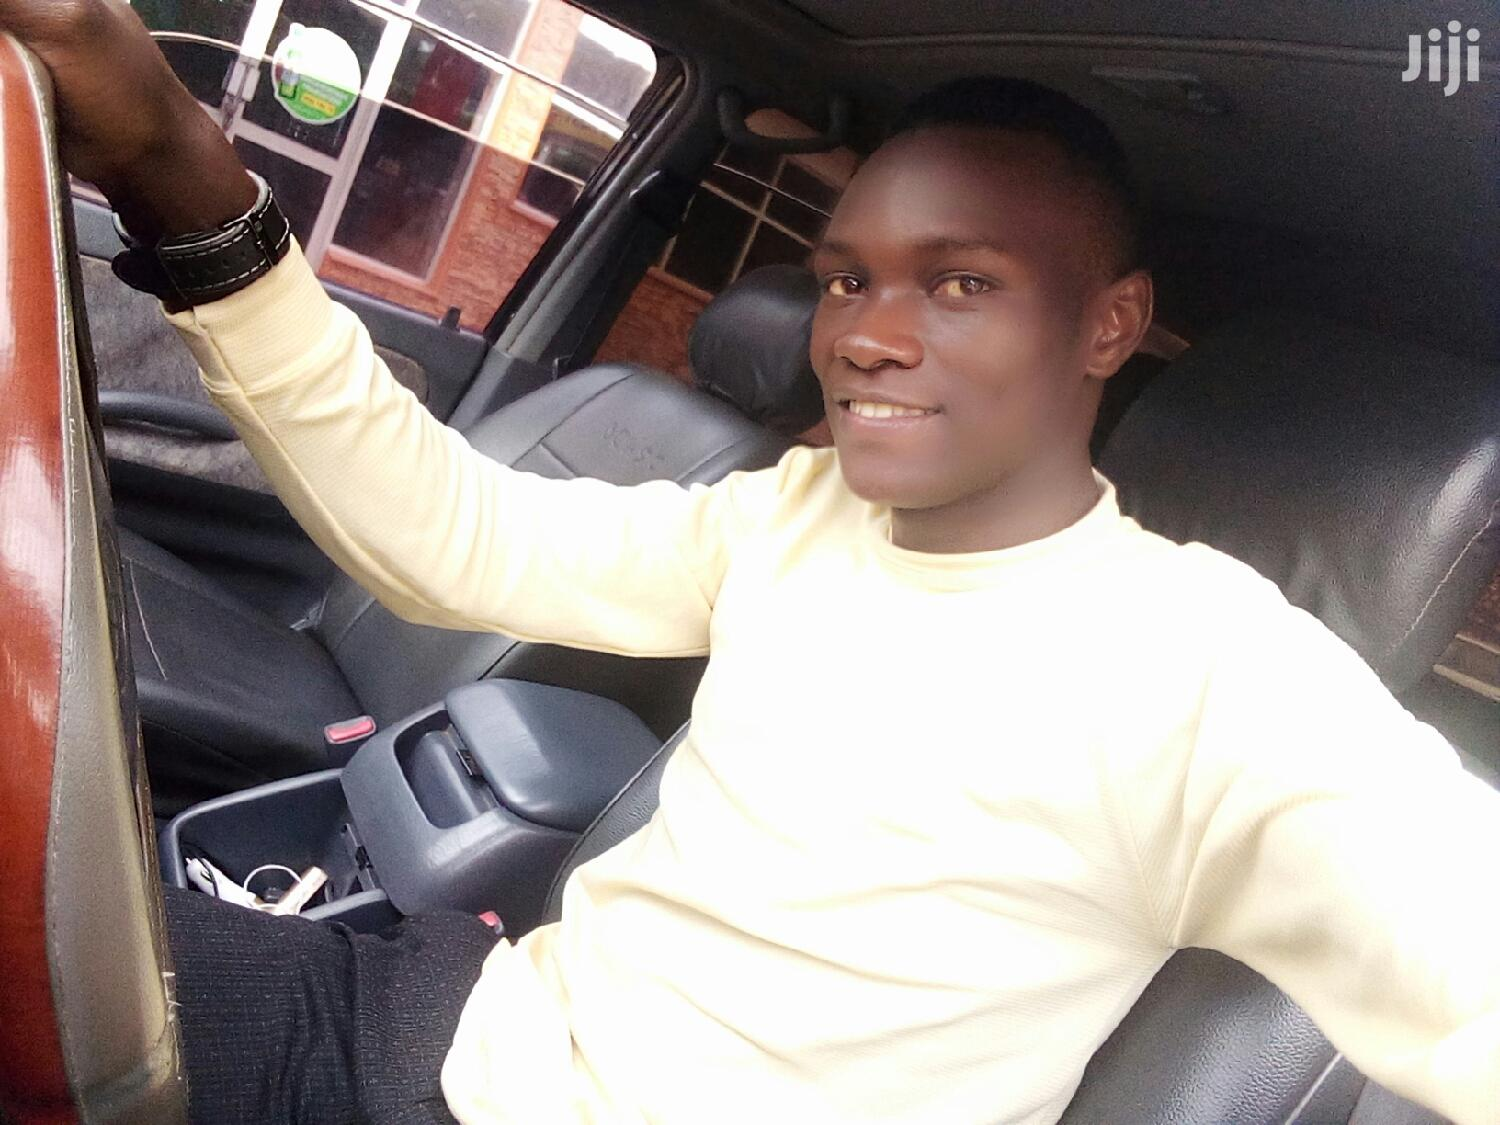 Driver With A Car,Need A Job